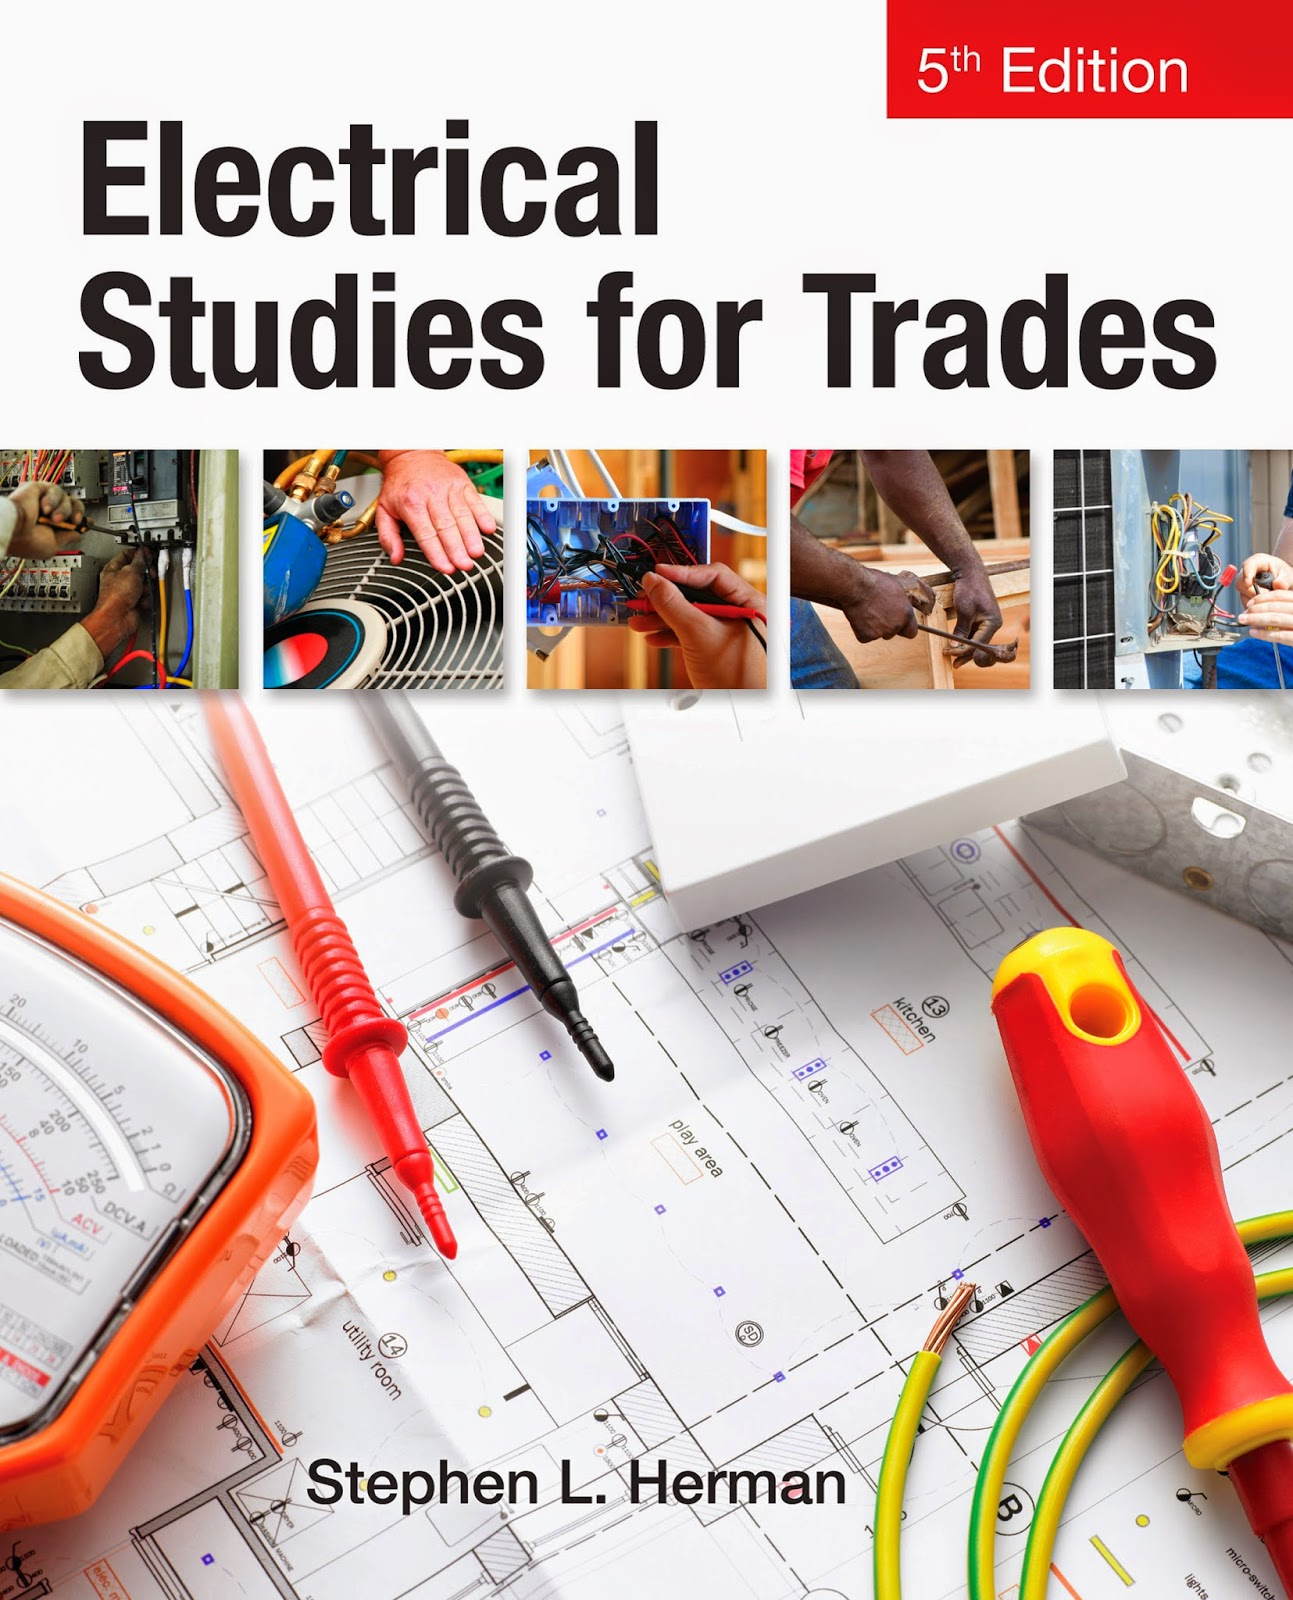 http://kingcheapebook.blogspot.com/2014/07/electrical-studies-for-trades.html